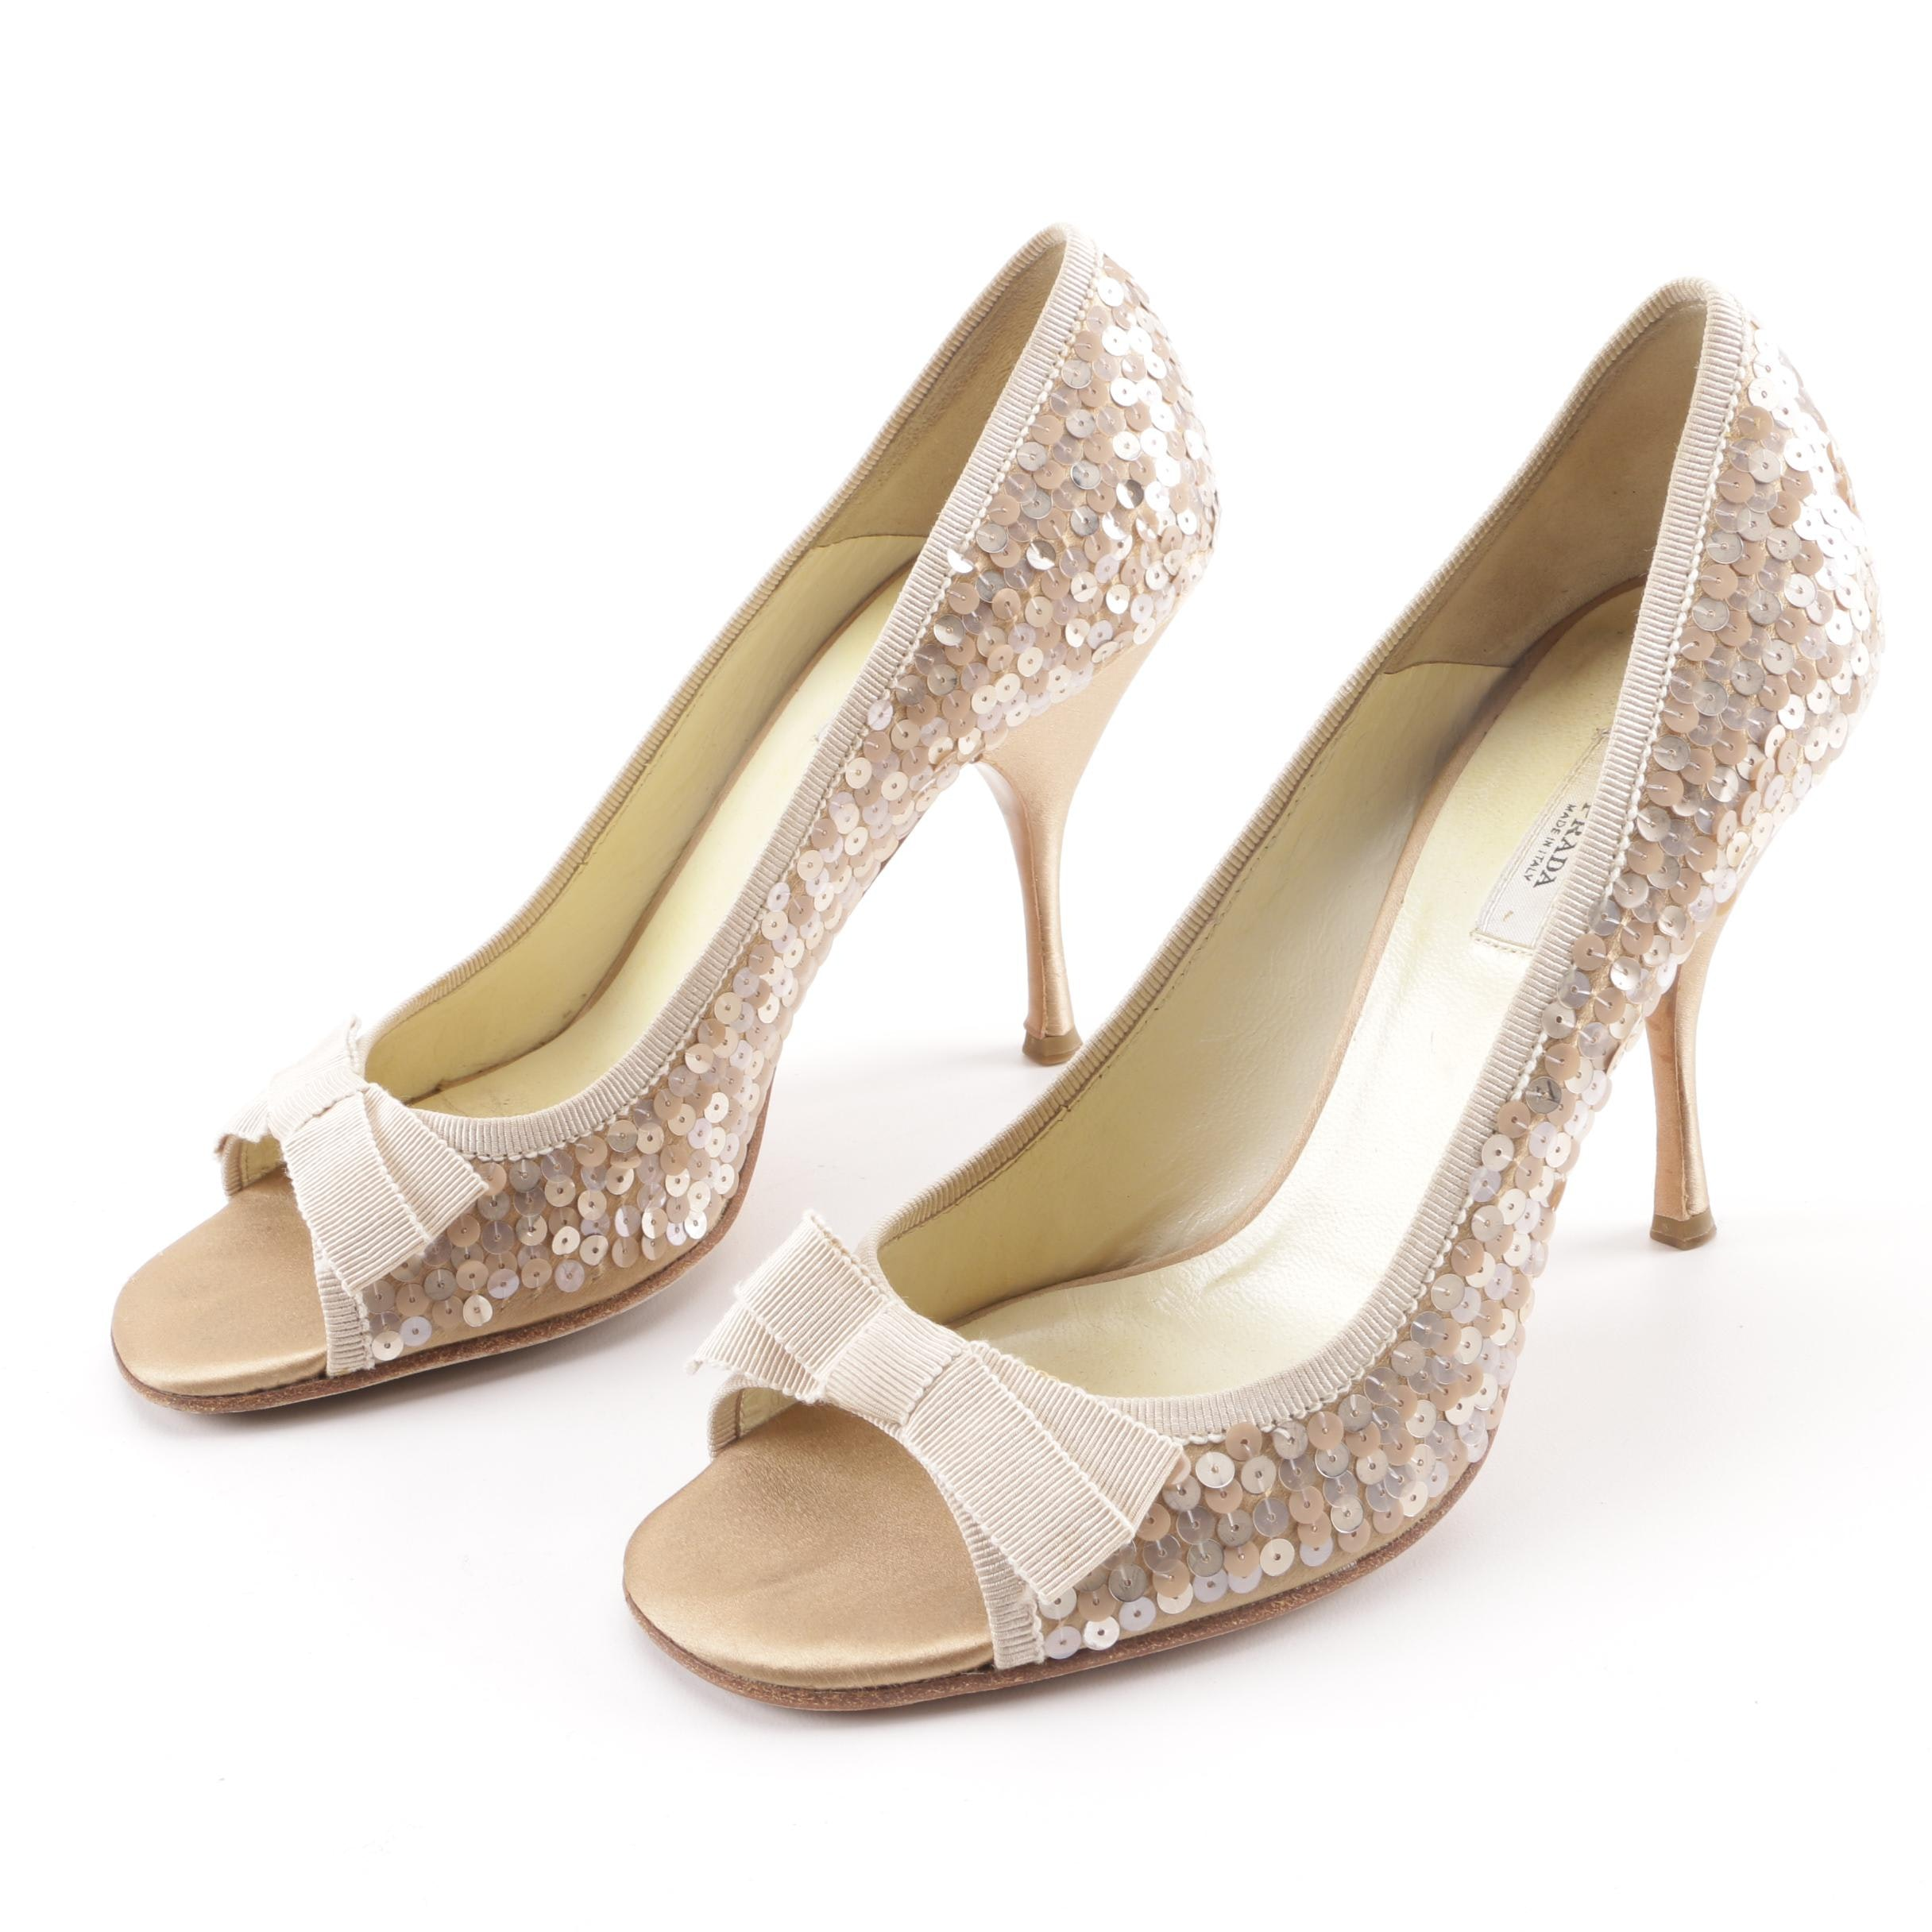 Prada Champagne Sequined Open-Toe Dress Pumps with Bow Accents